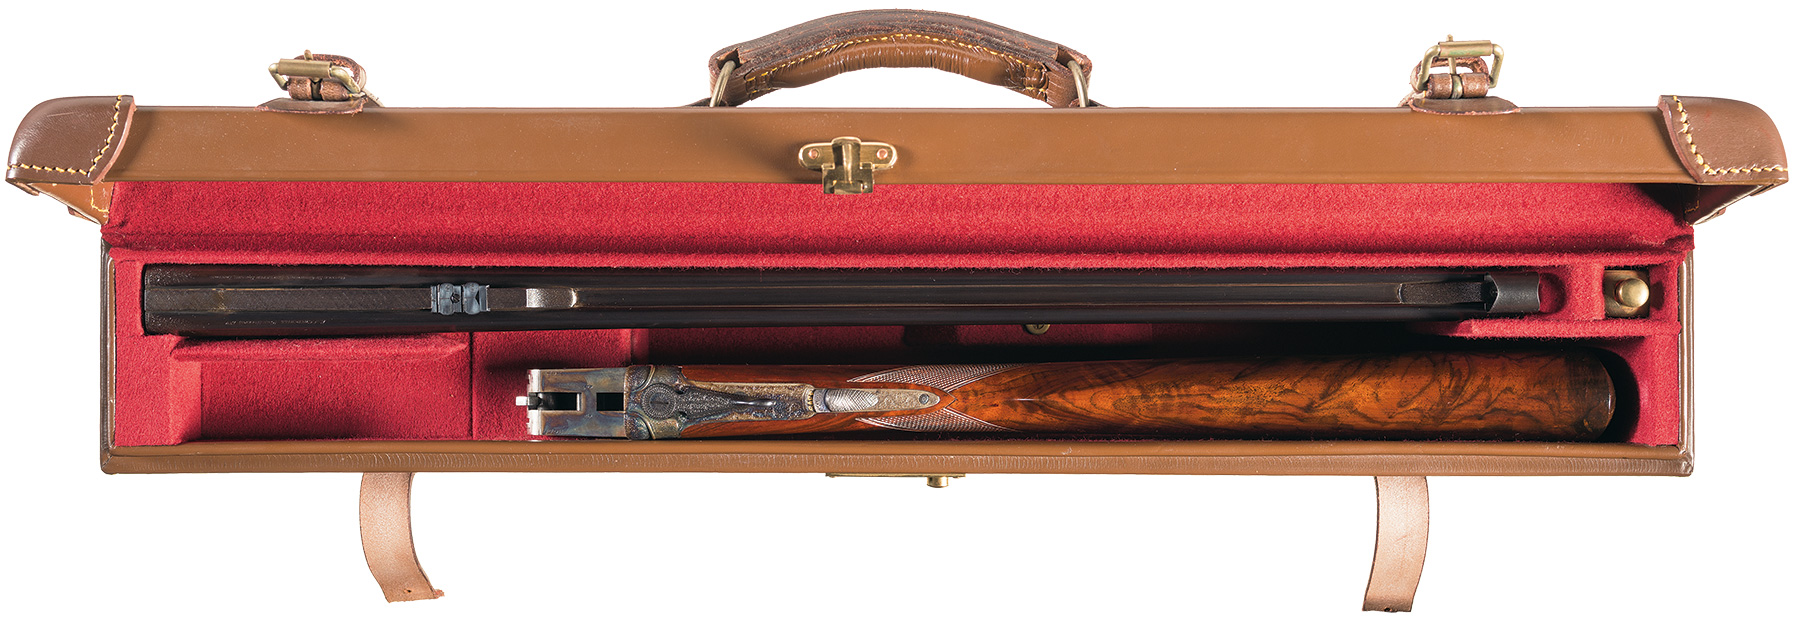 Churchill 22 Hornet double rifle fitted case